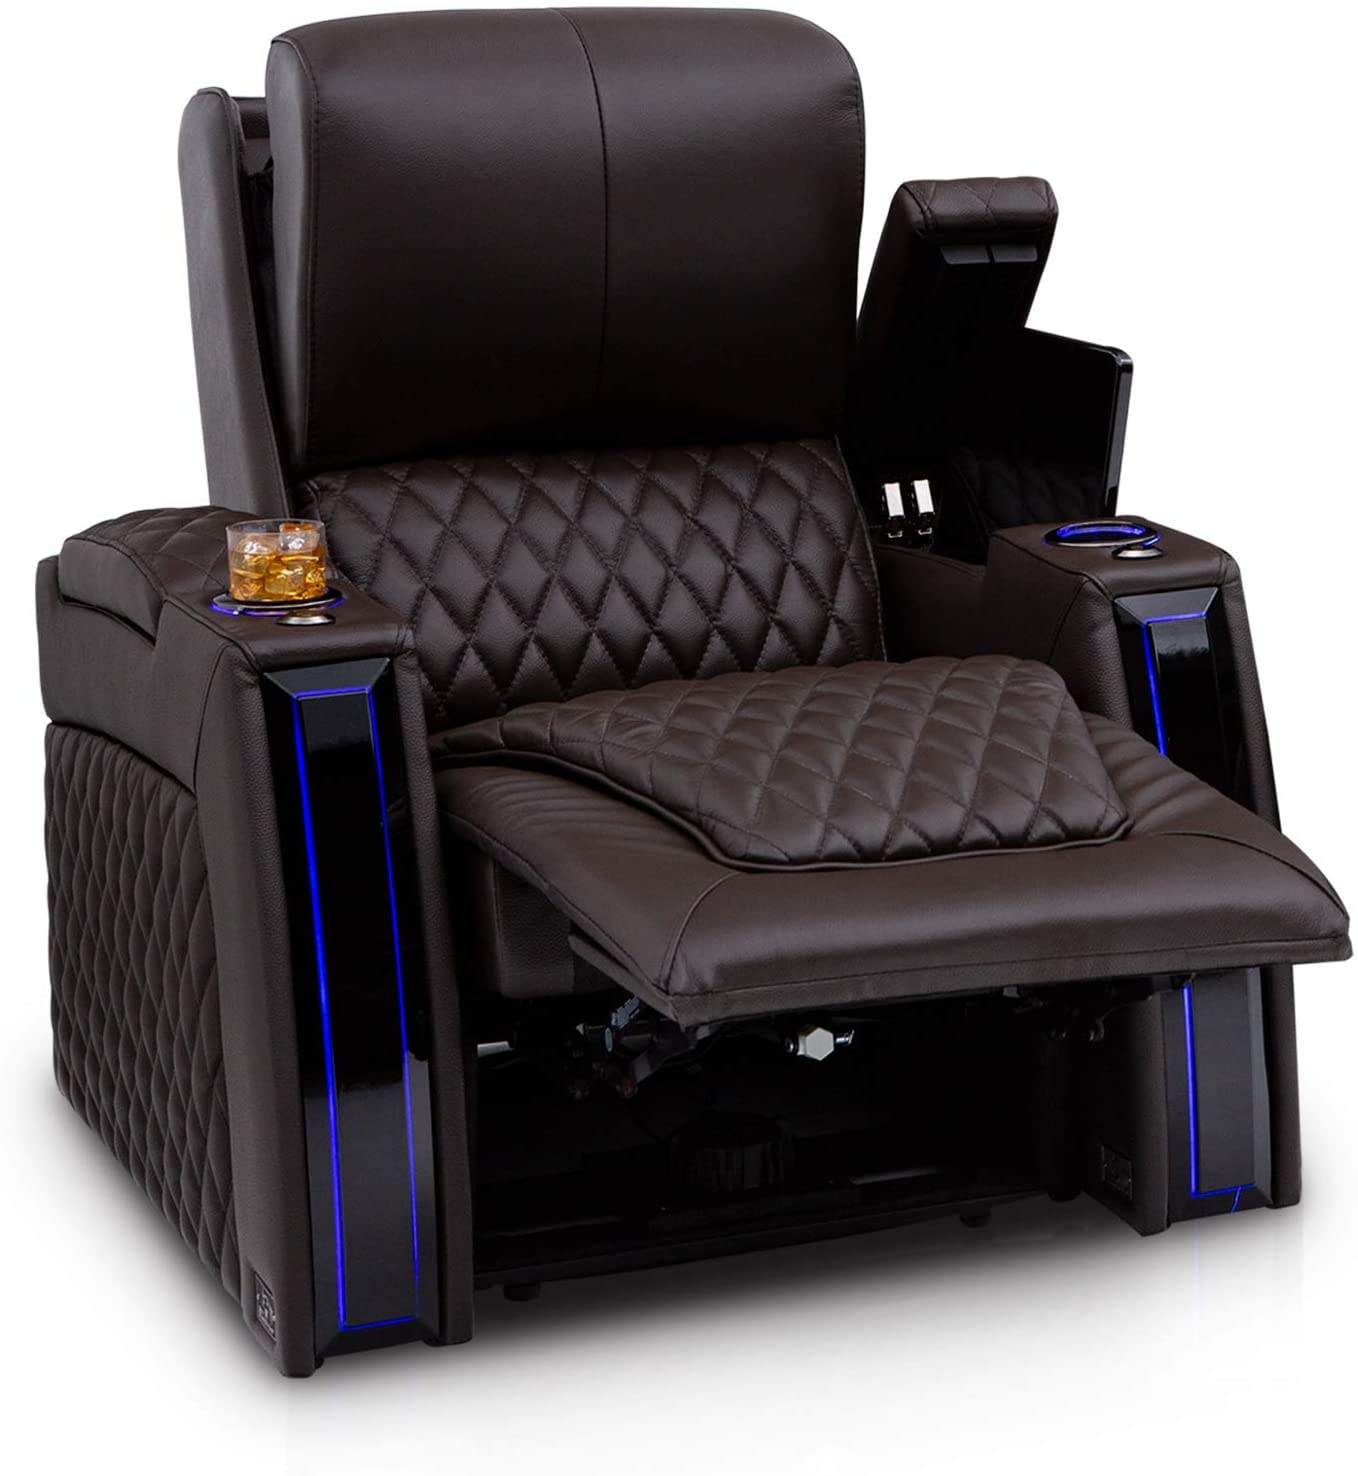 JKY Furniture Modern Design Hot selling Leisure Adjustable Electric Recliner Chair Cinema Theater Sofa